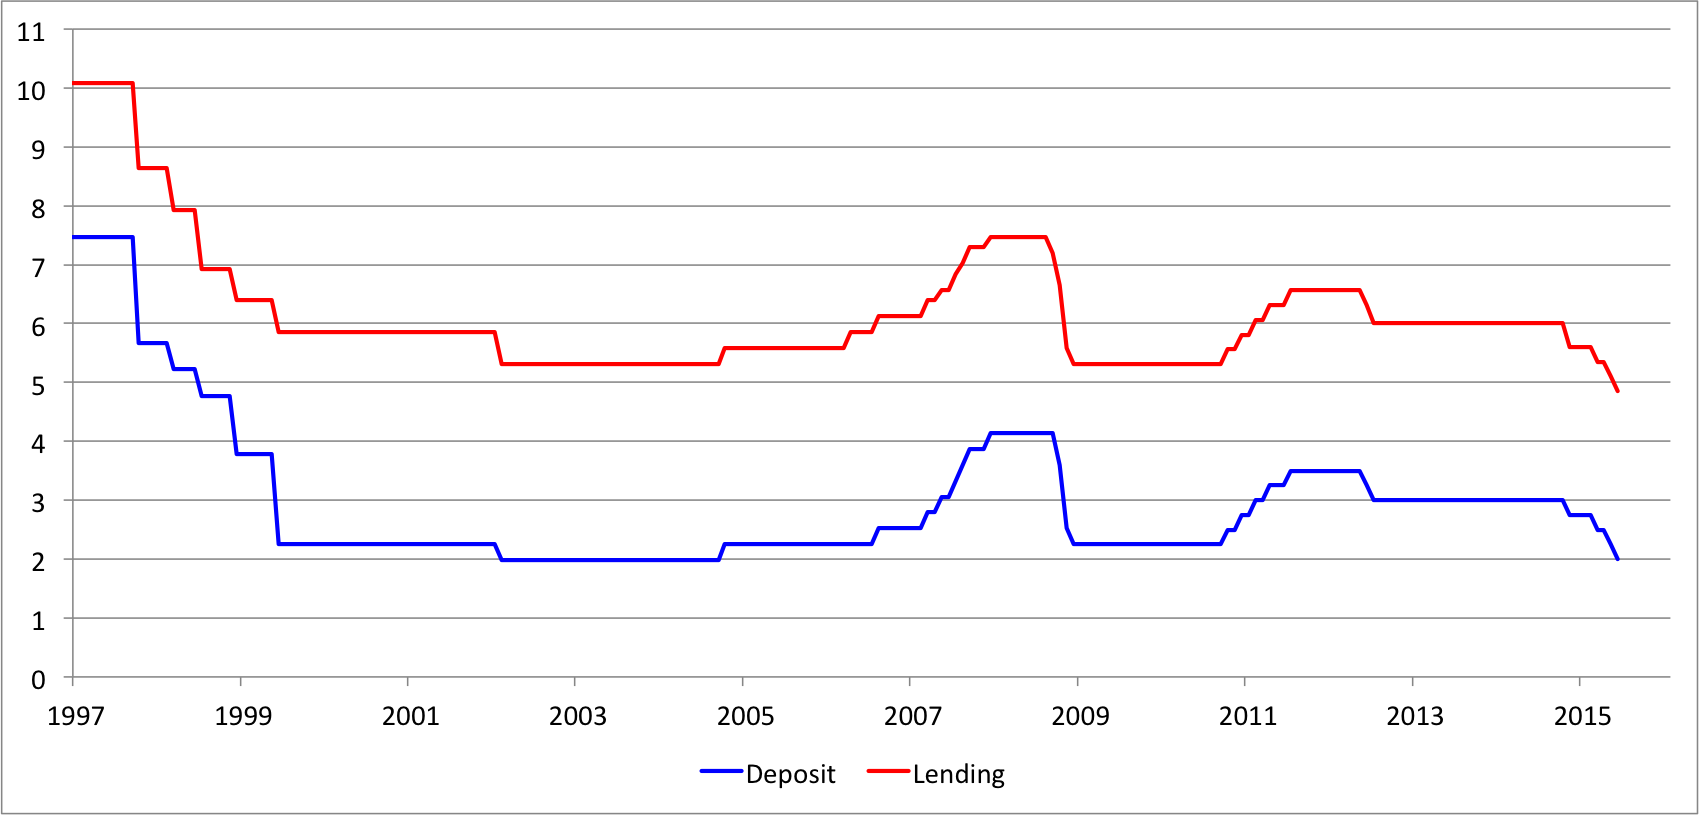 Source: IMF IFS through 2014 and author updates.